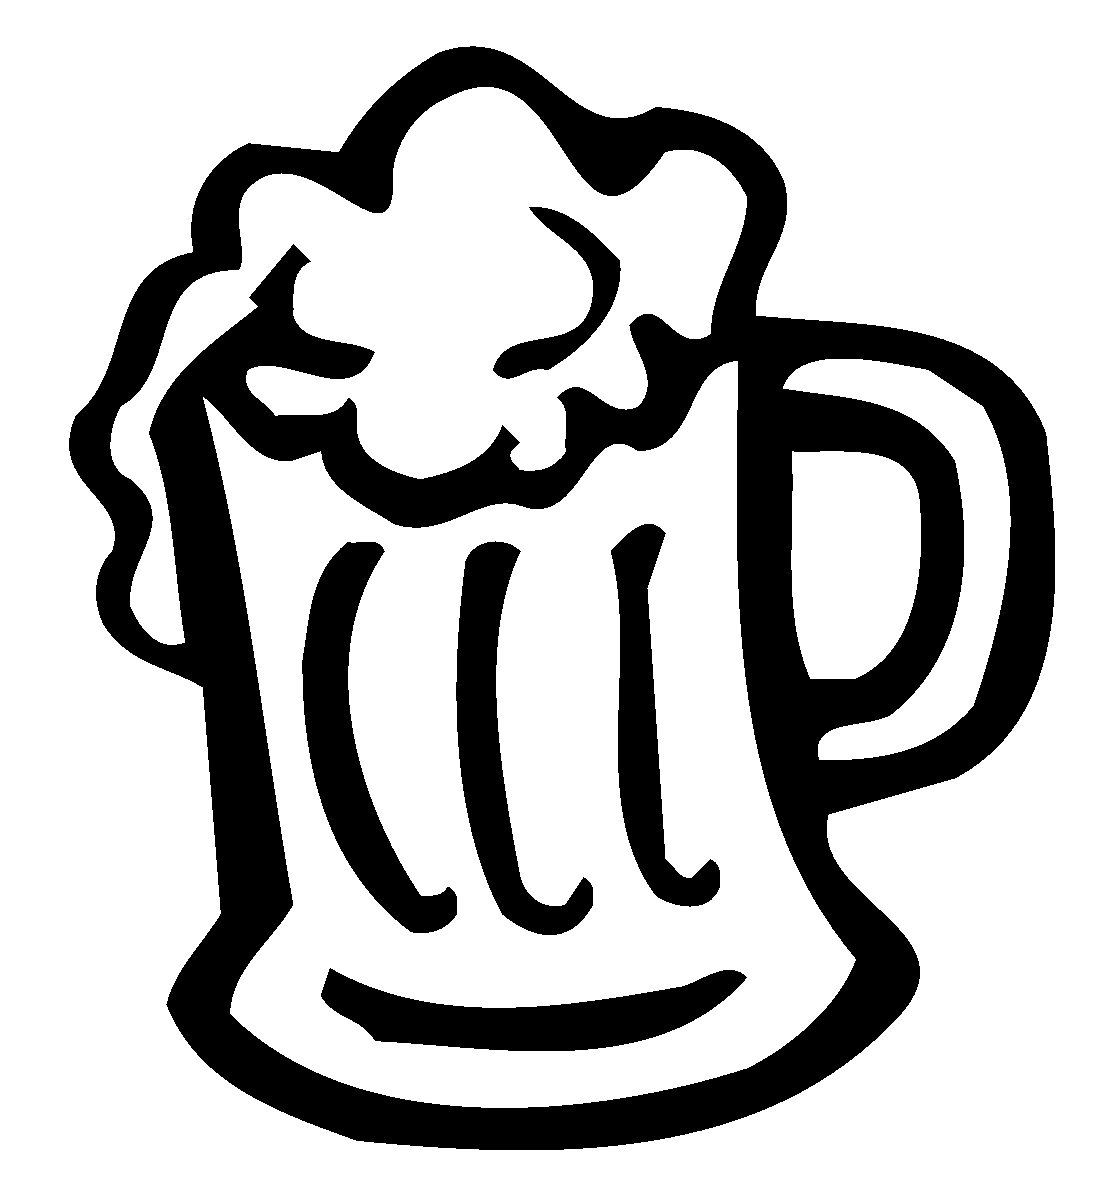 Cartoon Beer Mug